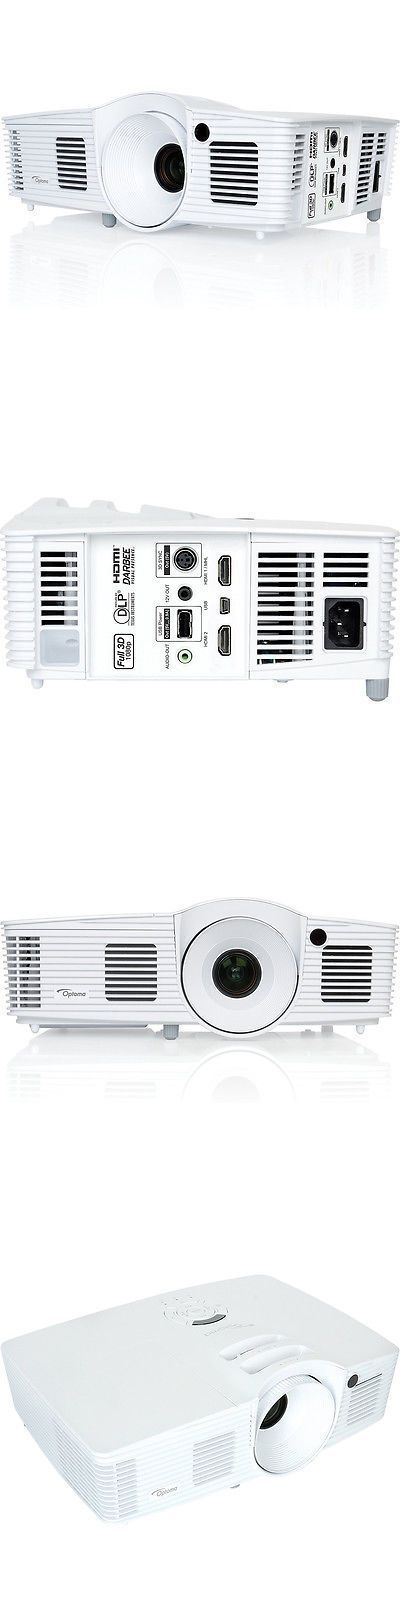 Home Theater Projectors: Optoma Hd28dse 1080P 3D Dlp Home Theater Projector BUY IT NOW ONLY: $670.0 #hometheatreprojectors